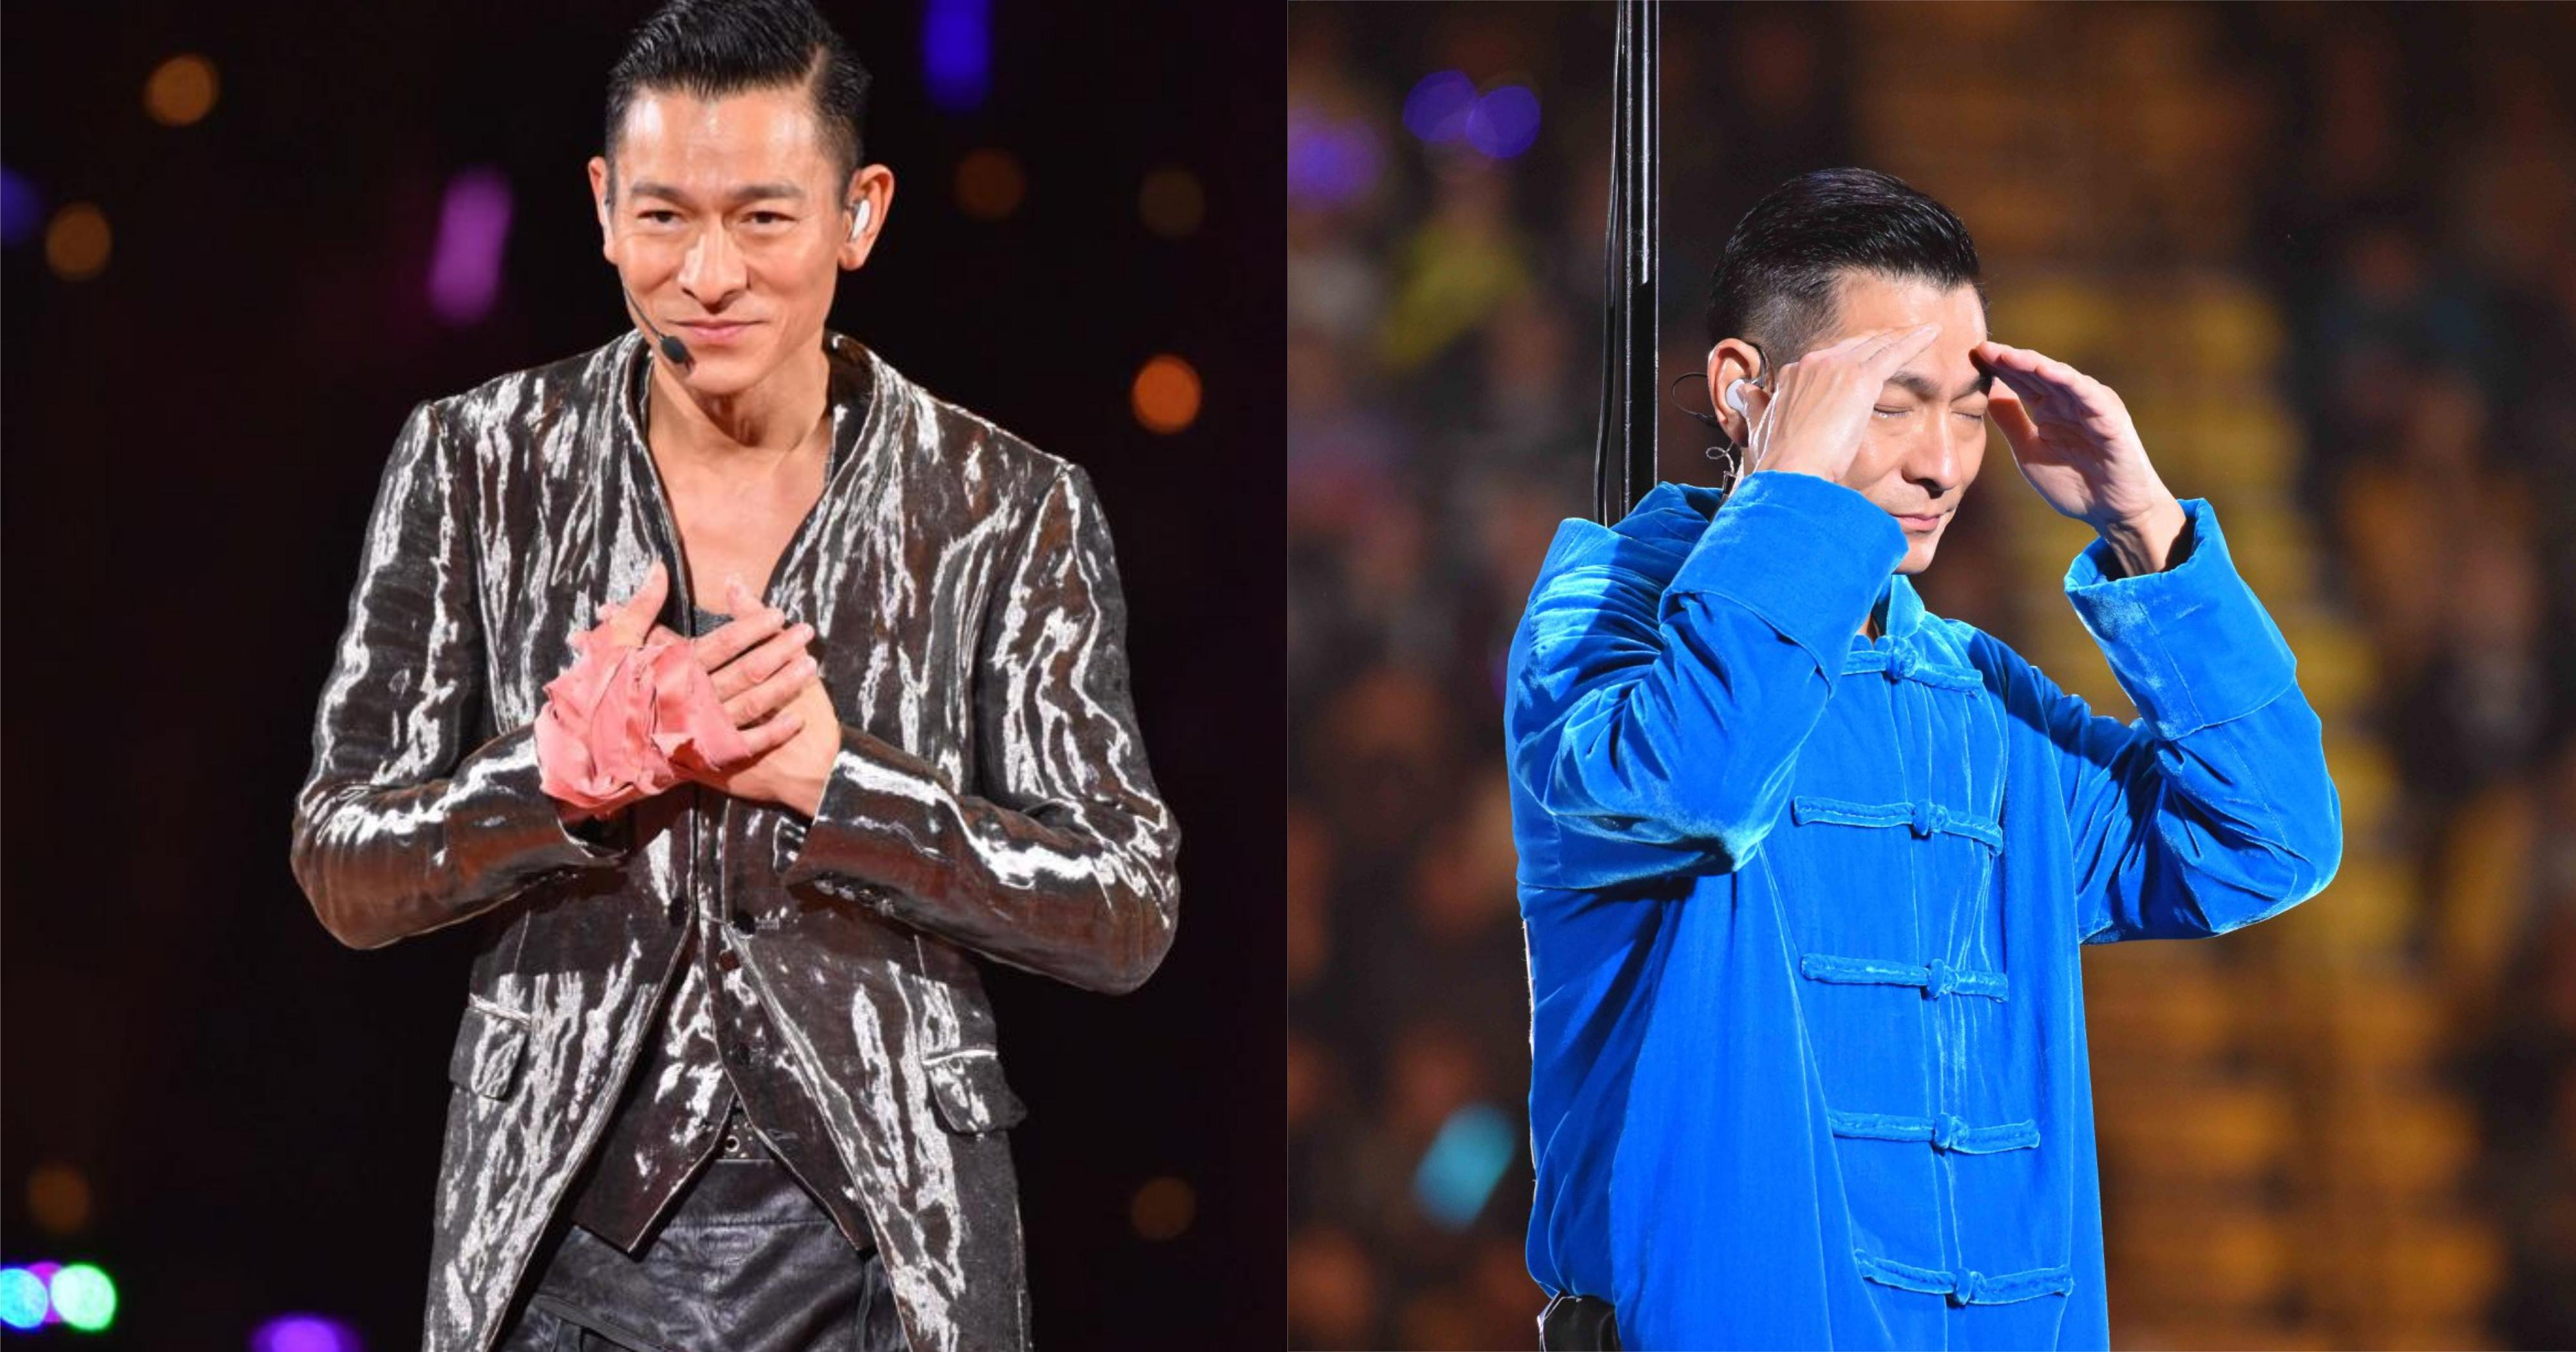 Andy Lau to perform at S'pore Indoor Stadium from Sept. 25 to 28, 2019